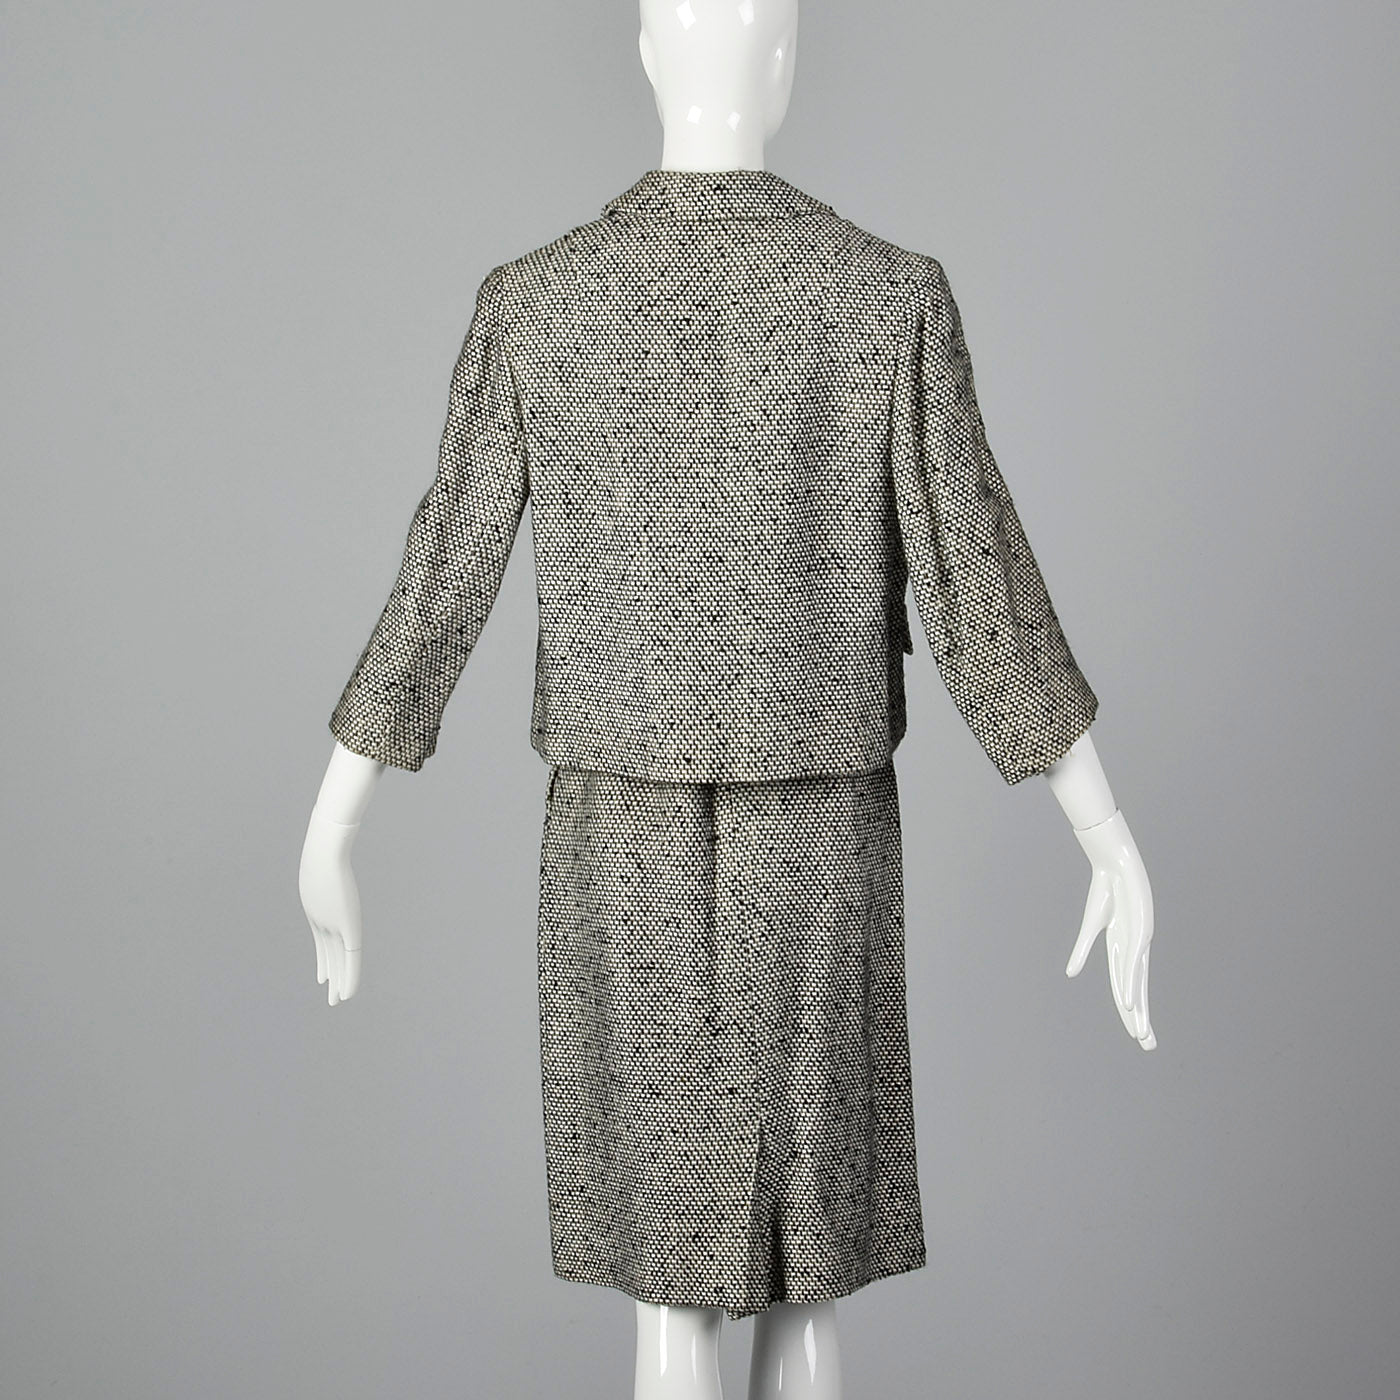 1960s Black and White Tweed Skirt Suit